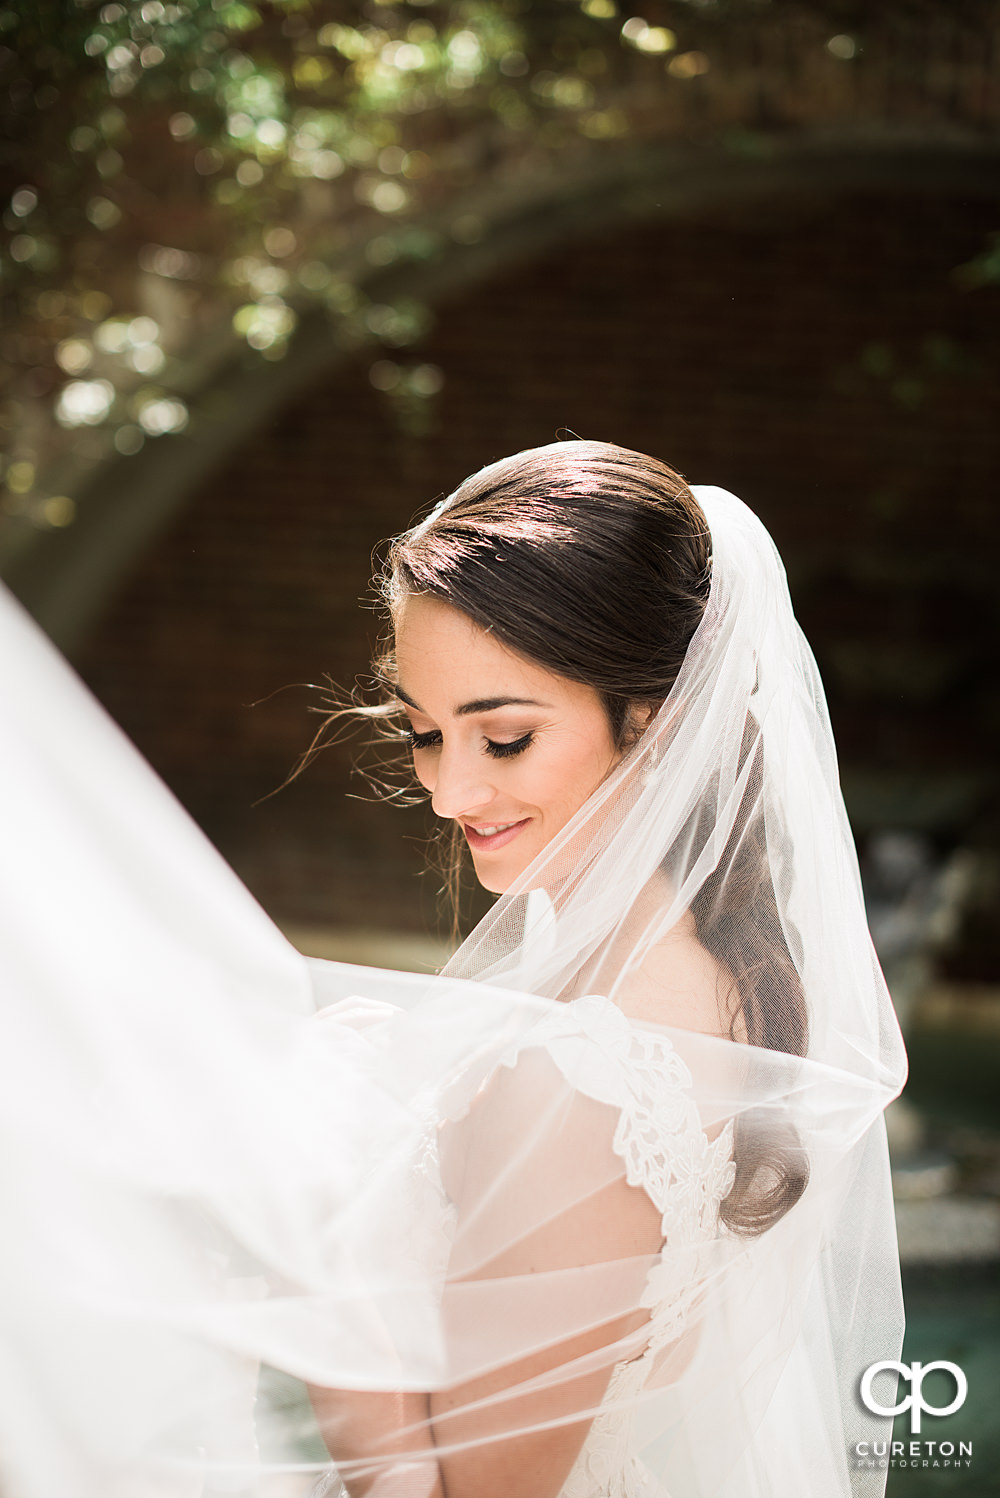 Bride smiling with her veil blowing in the rose garden at Furman.